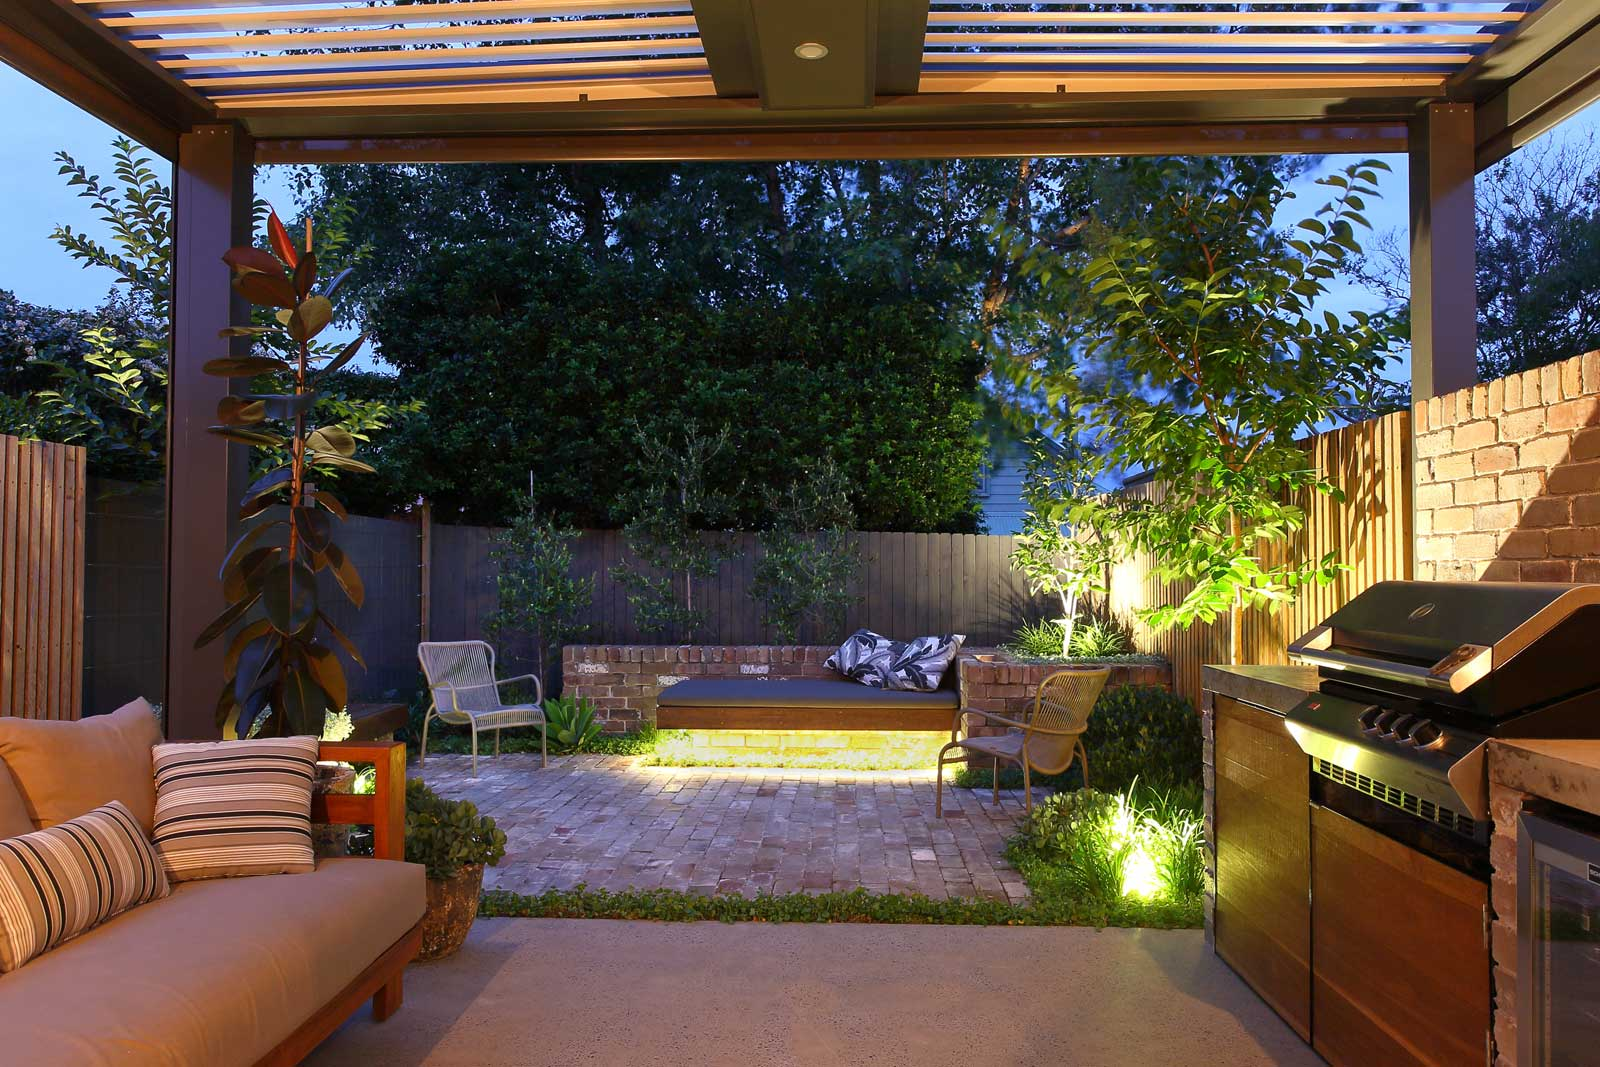 Award-Winning Landscape Designers Sydney - Landscape ... on Bespoke Outdoor Living id=35406